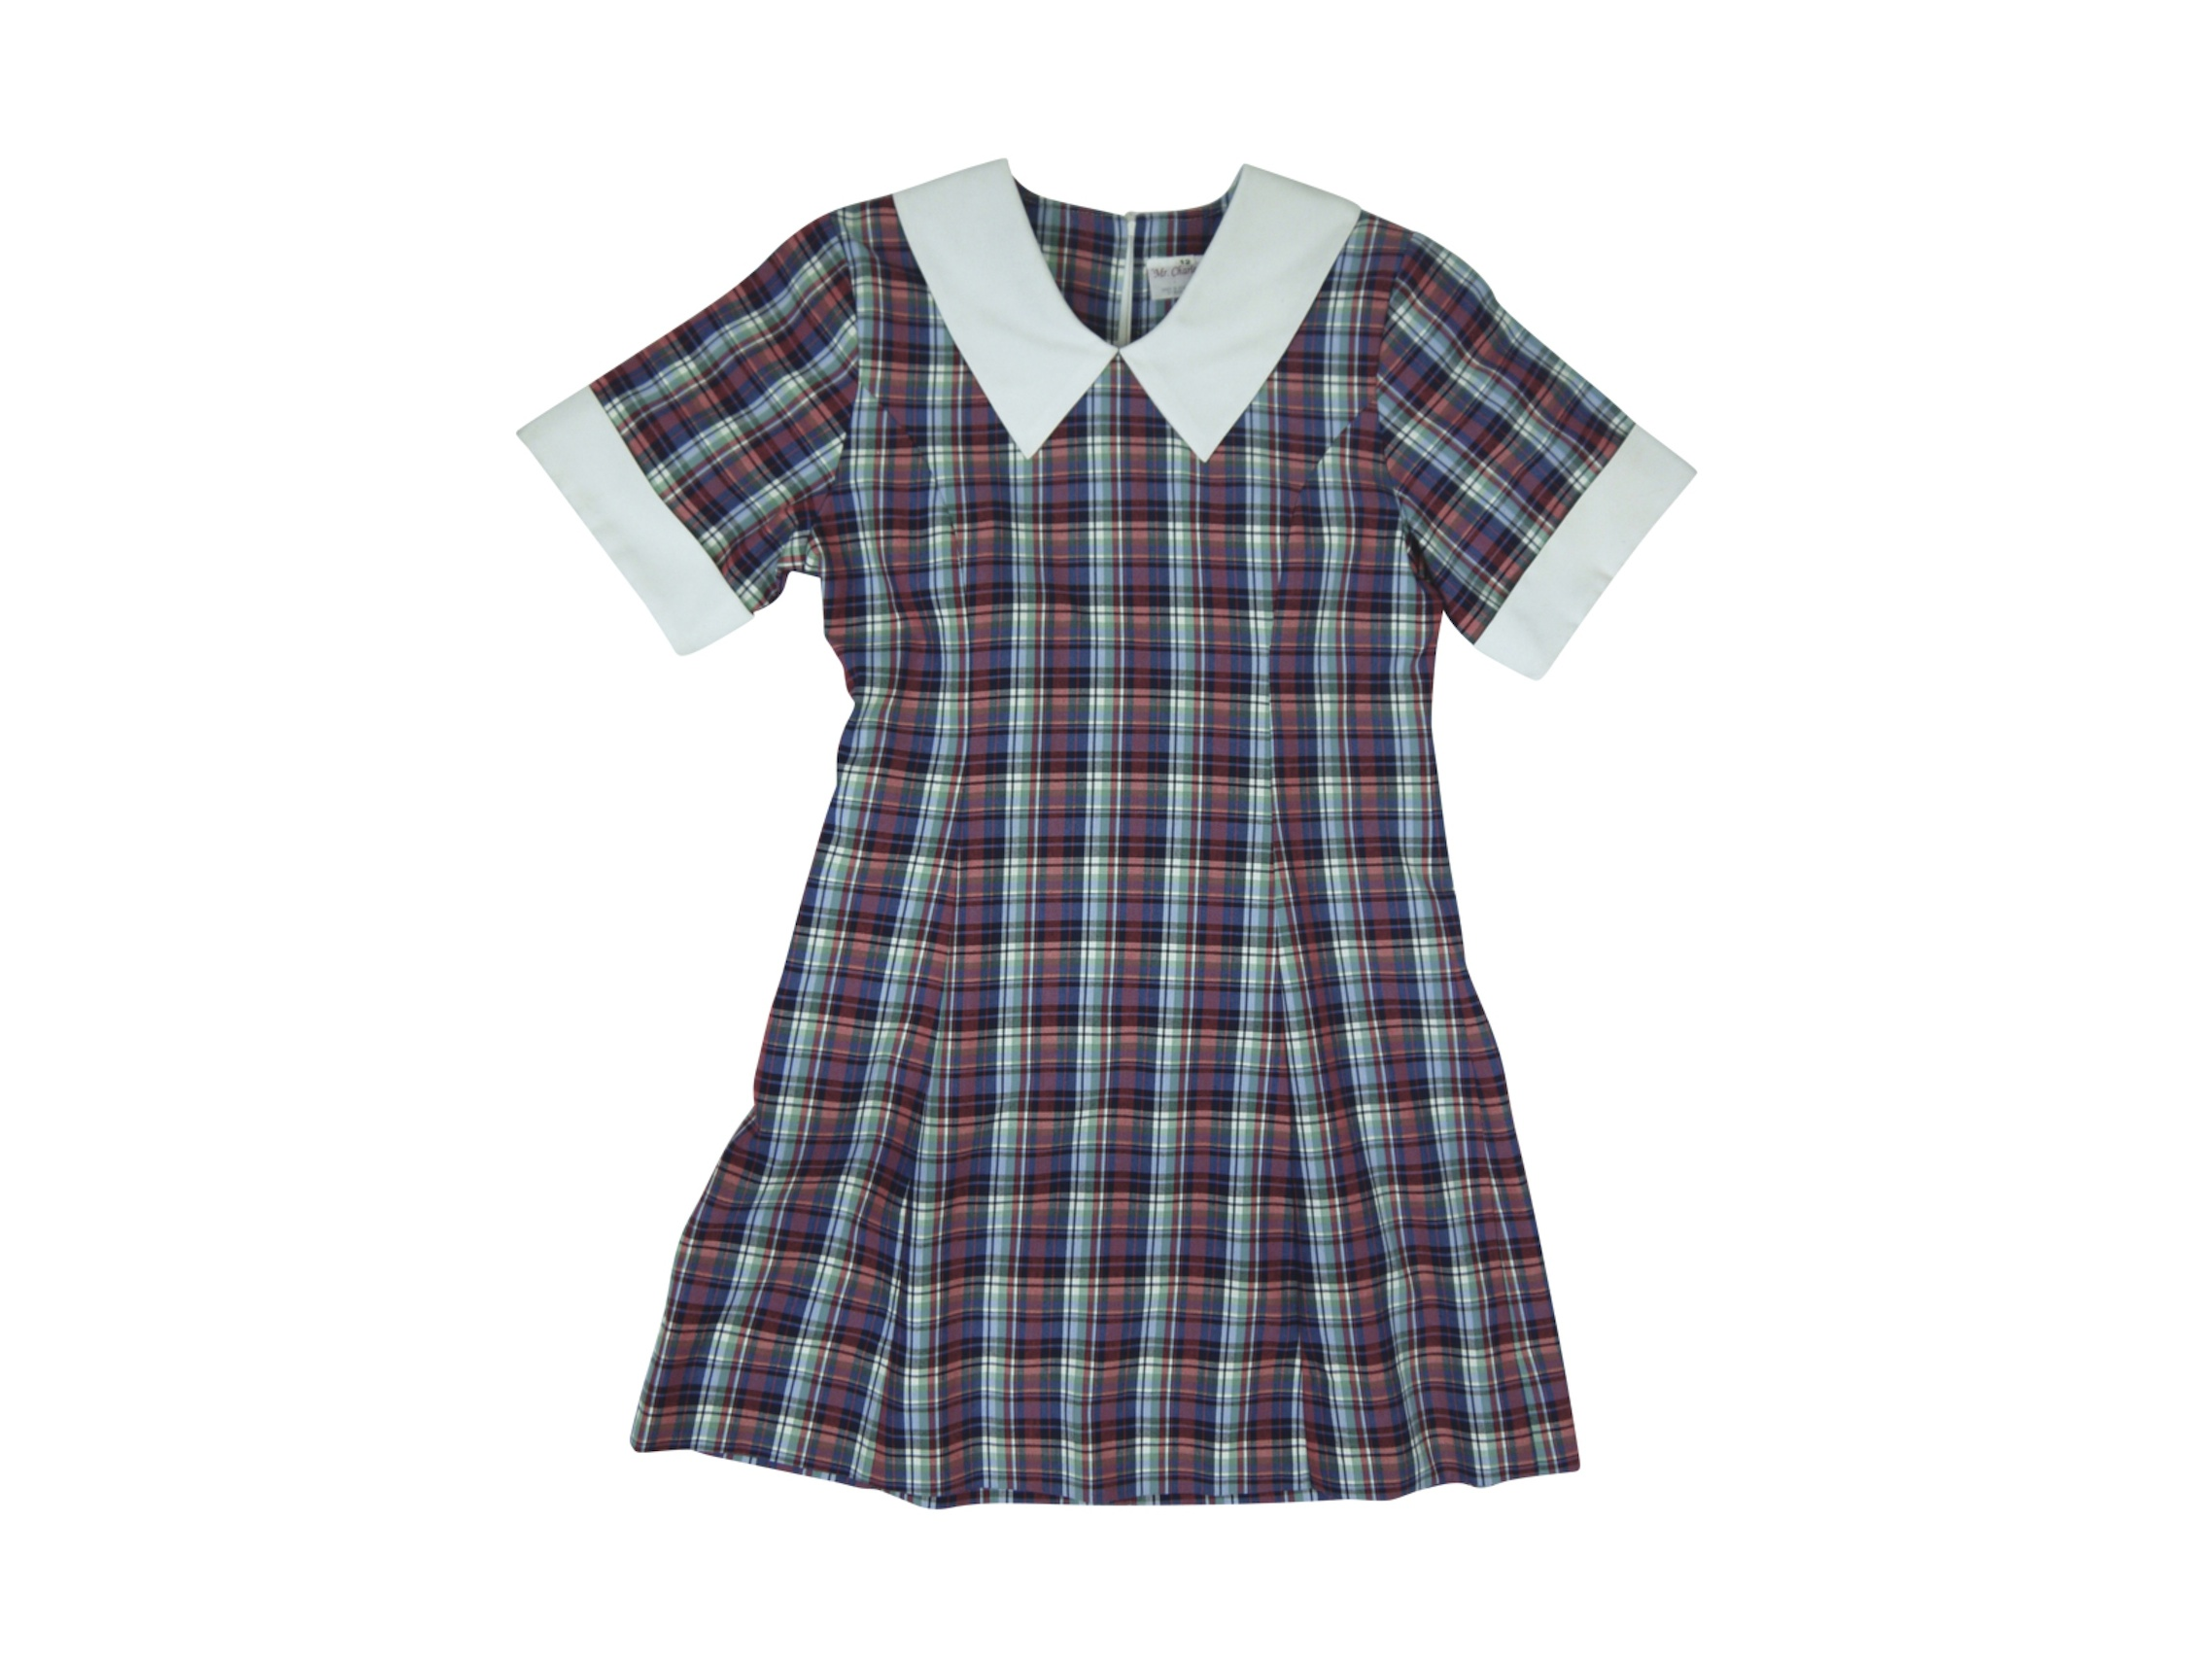 Home and Away School Uniforms | Mr Charles